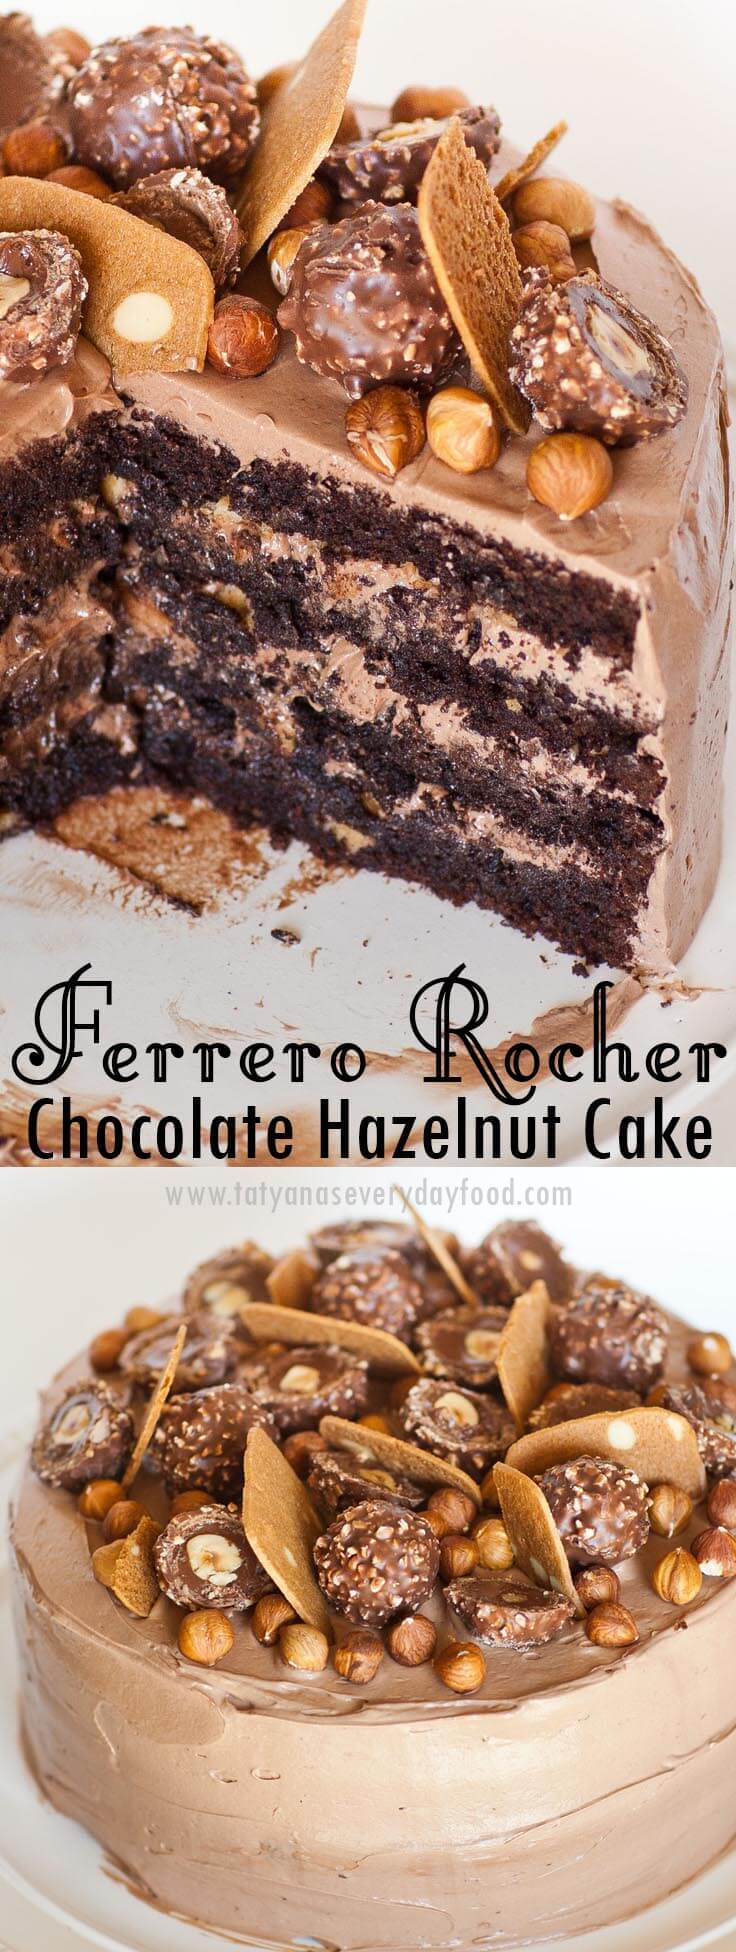 Ferrero Rocher Cake video recipe